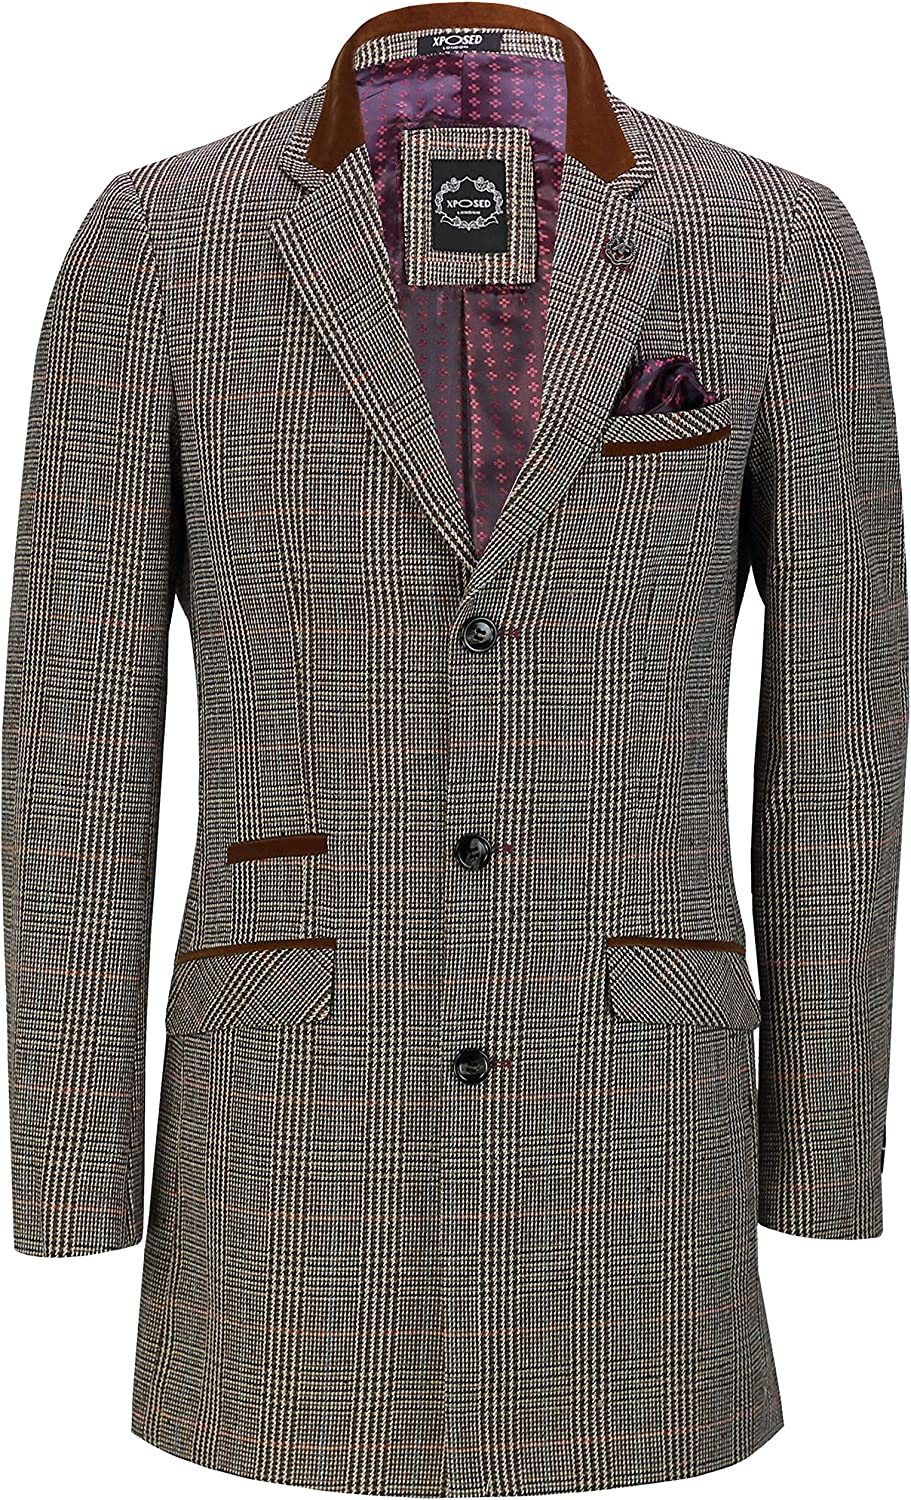 Xposed Mens Tweed Check 3//4 Long Overcoat Smart Vintage Styled Tailored